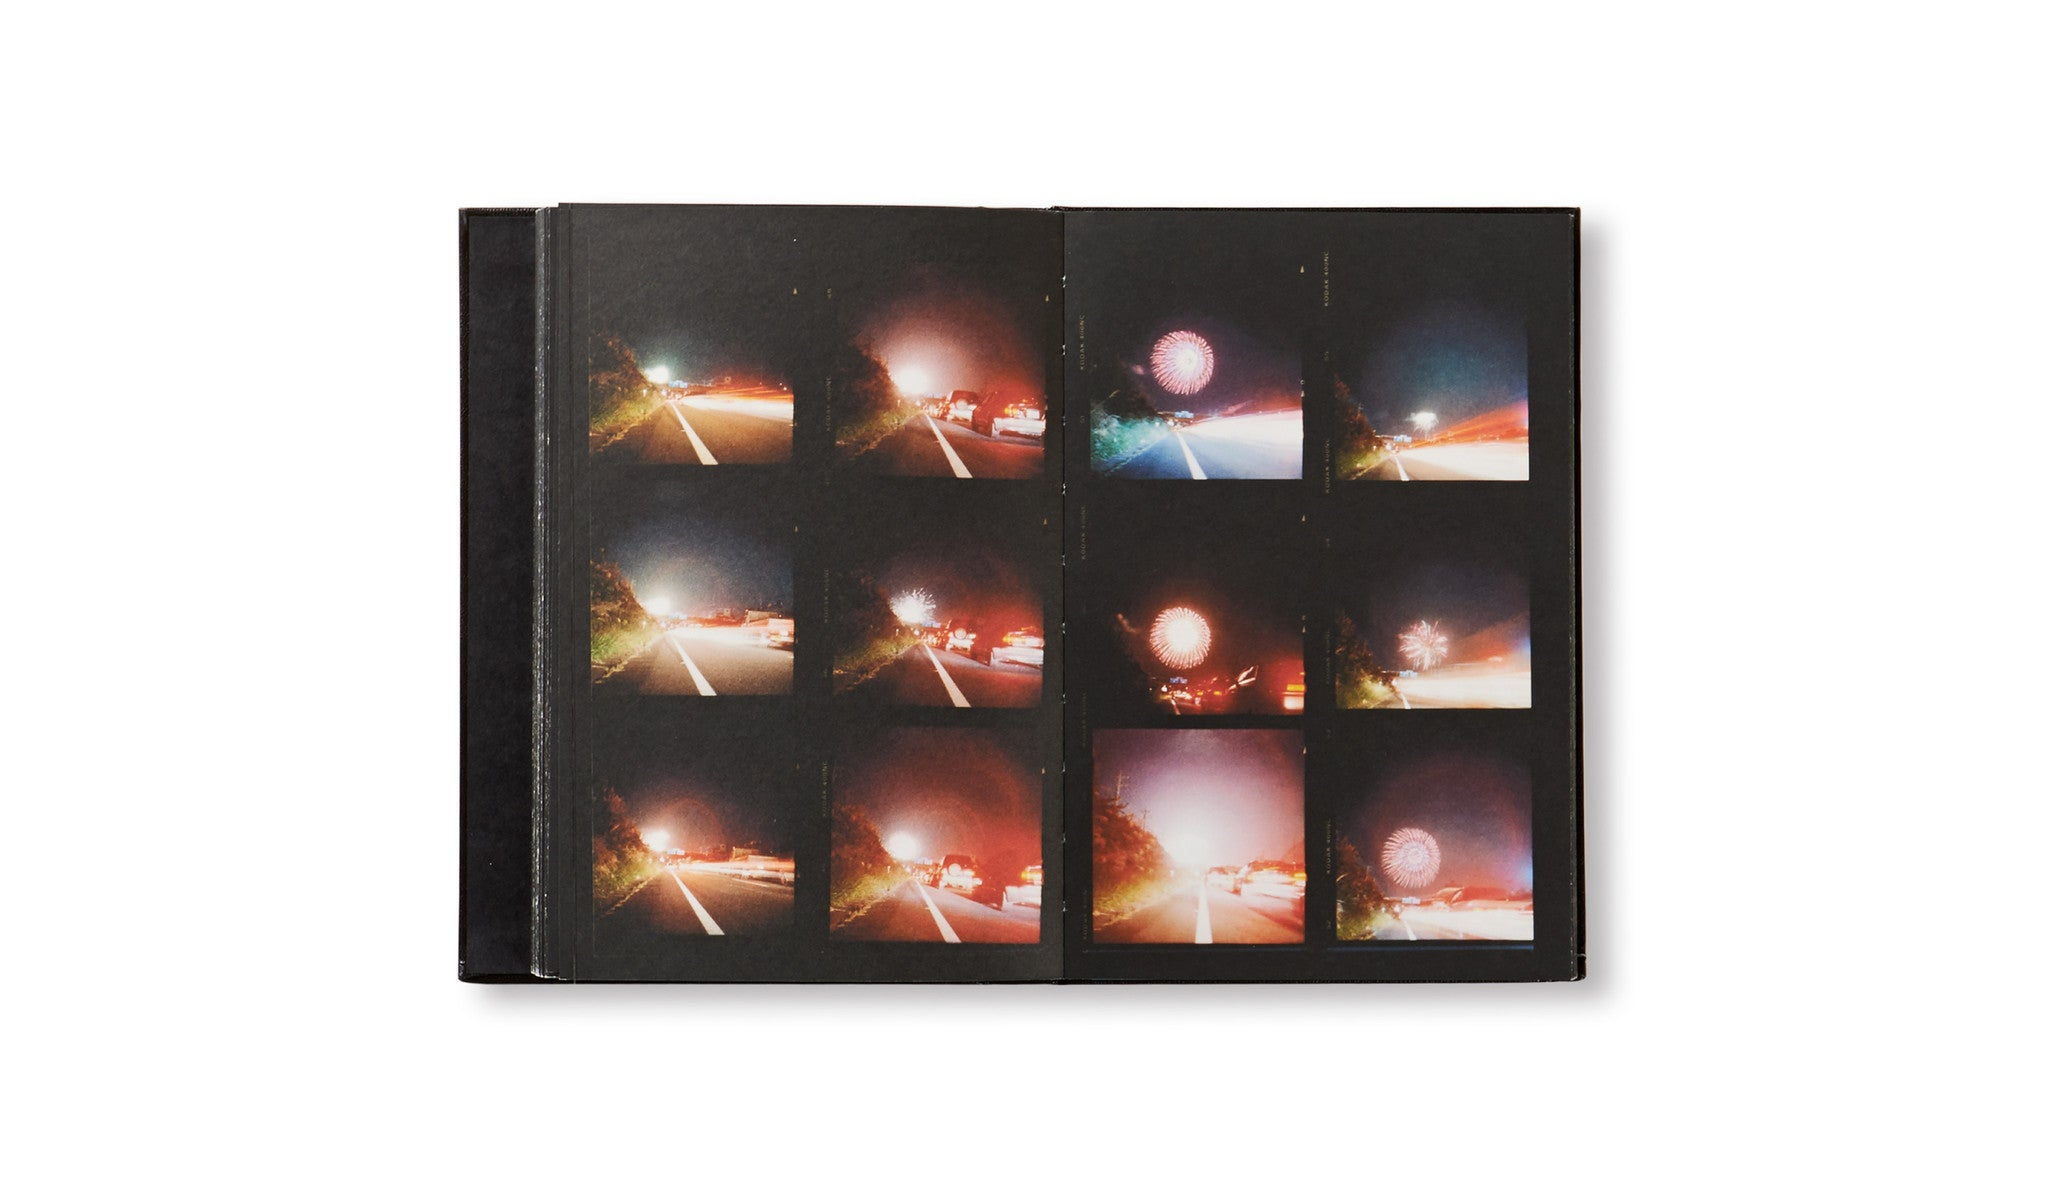 SHEETS by Rinko Kawauchi [SPECIAL EDITION / SIGNED]